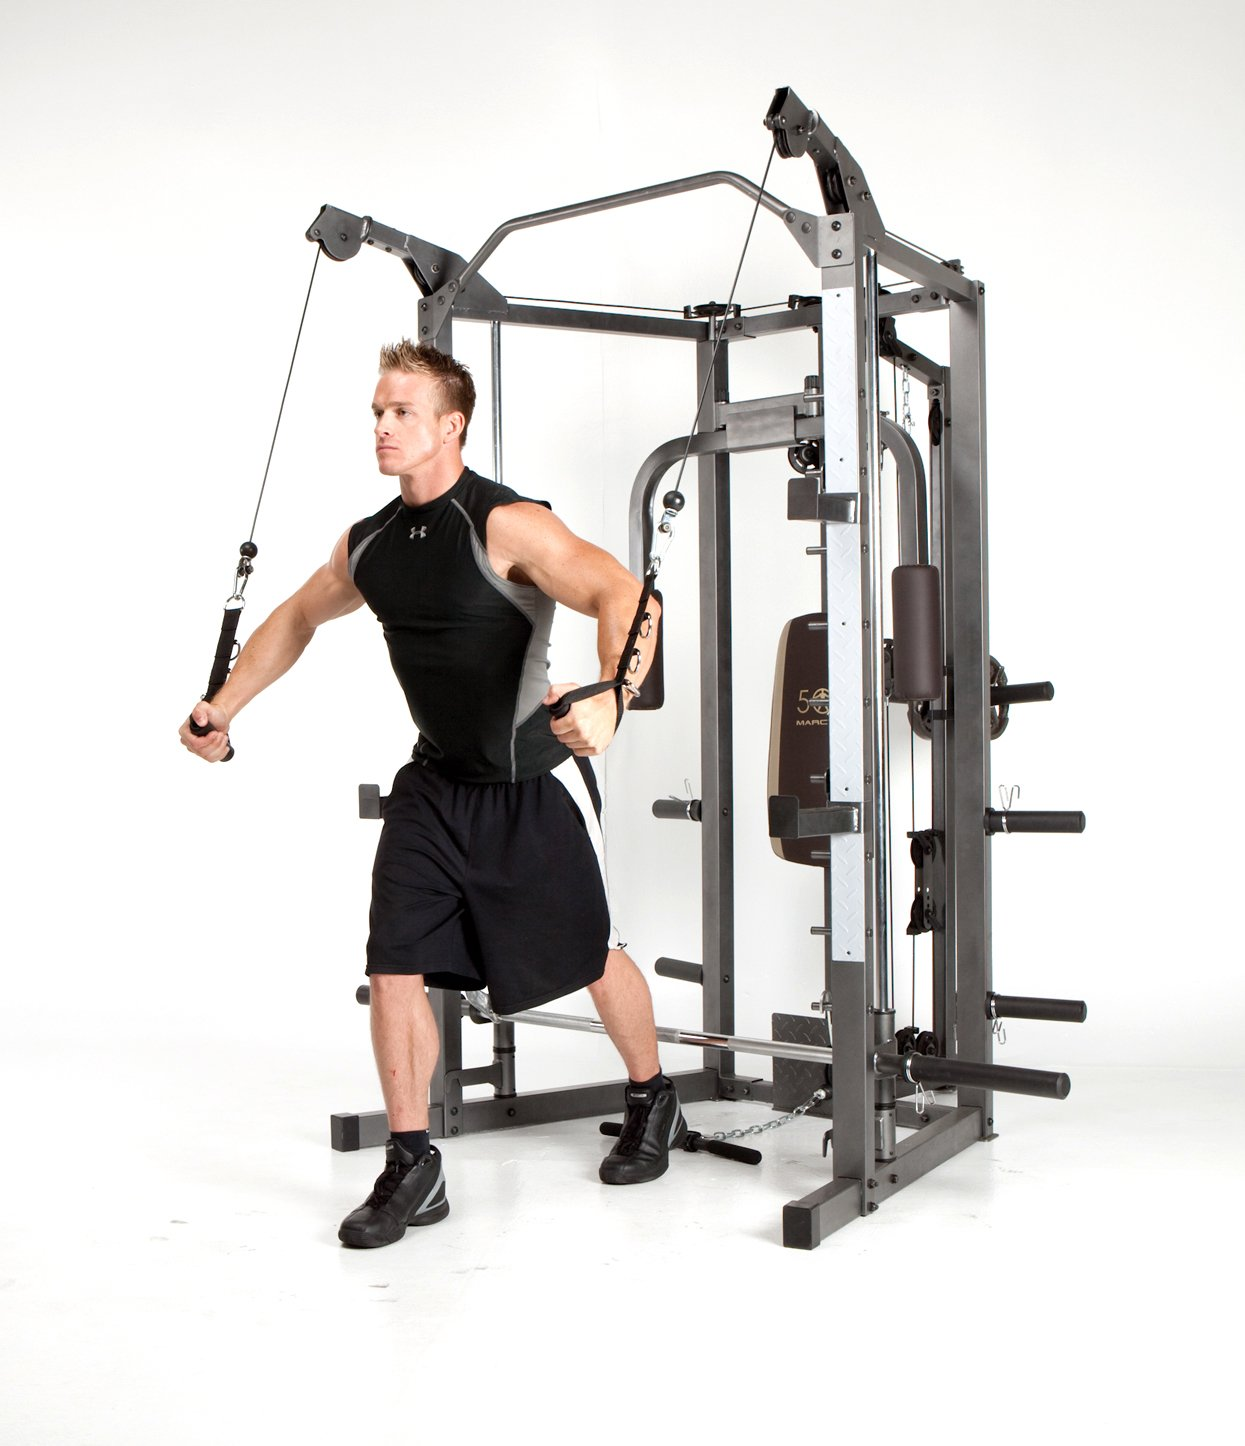 Marcy Smith Machine with Bench and Weight Bar – Home Gym Equipment SM-4008 by Marcy (Image #5)